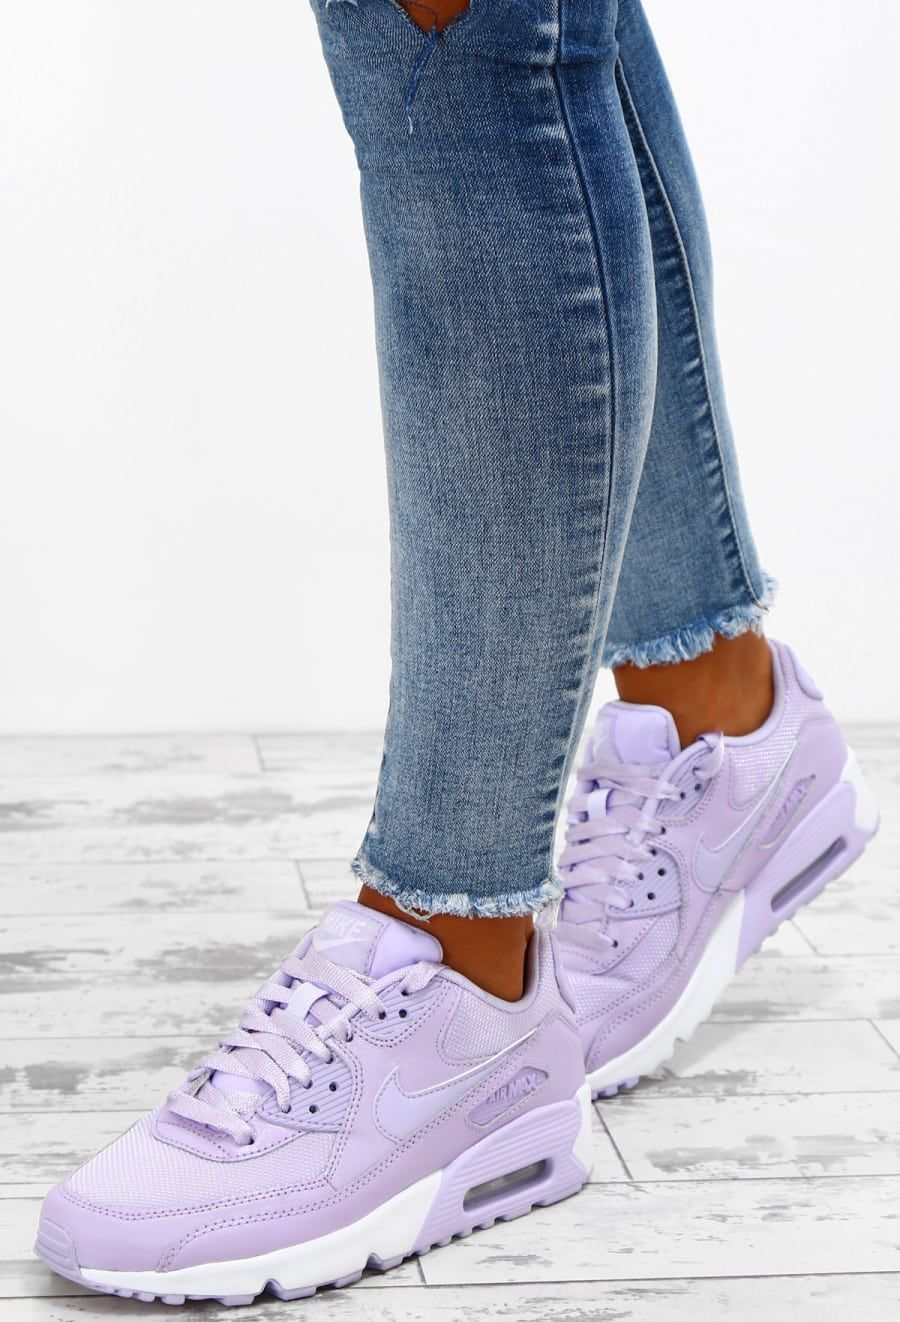 Nike Air Max 90 Lilac Trainers UK 3 in 2020 Nike Air Max  Nike air max